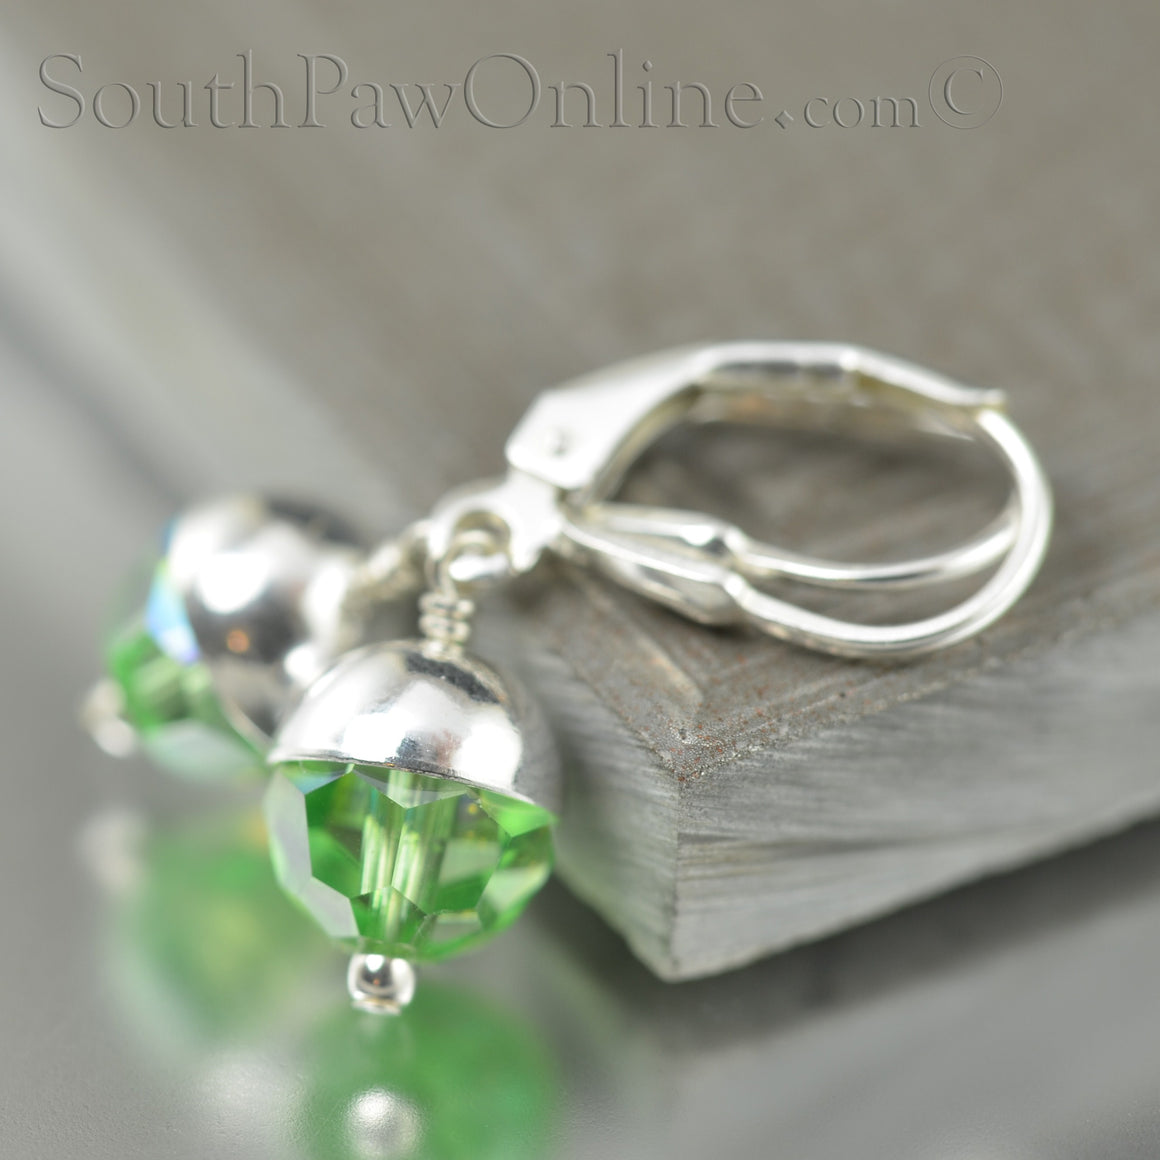 August Birthstone Swarovski Crystal Earrings in Green Peridot